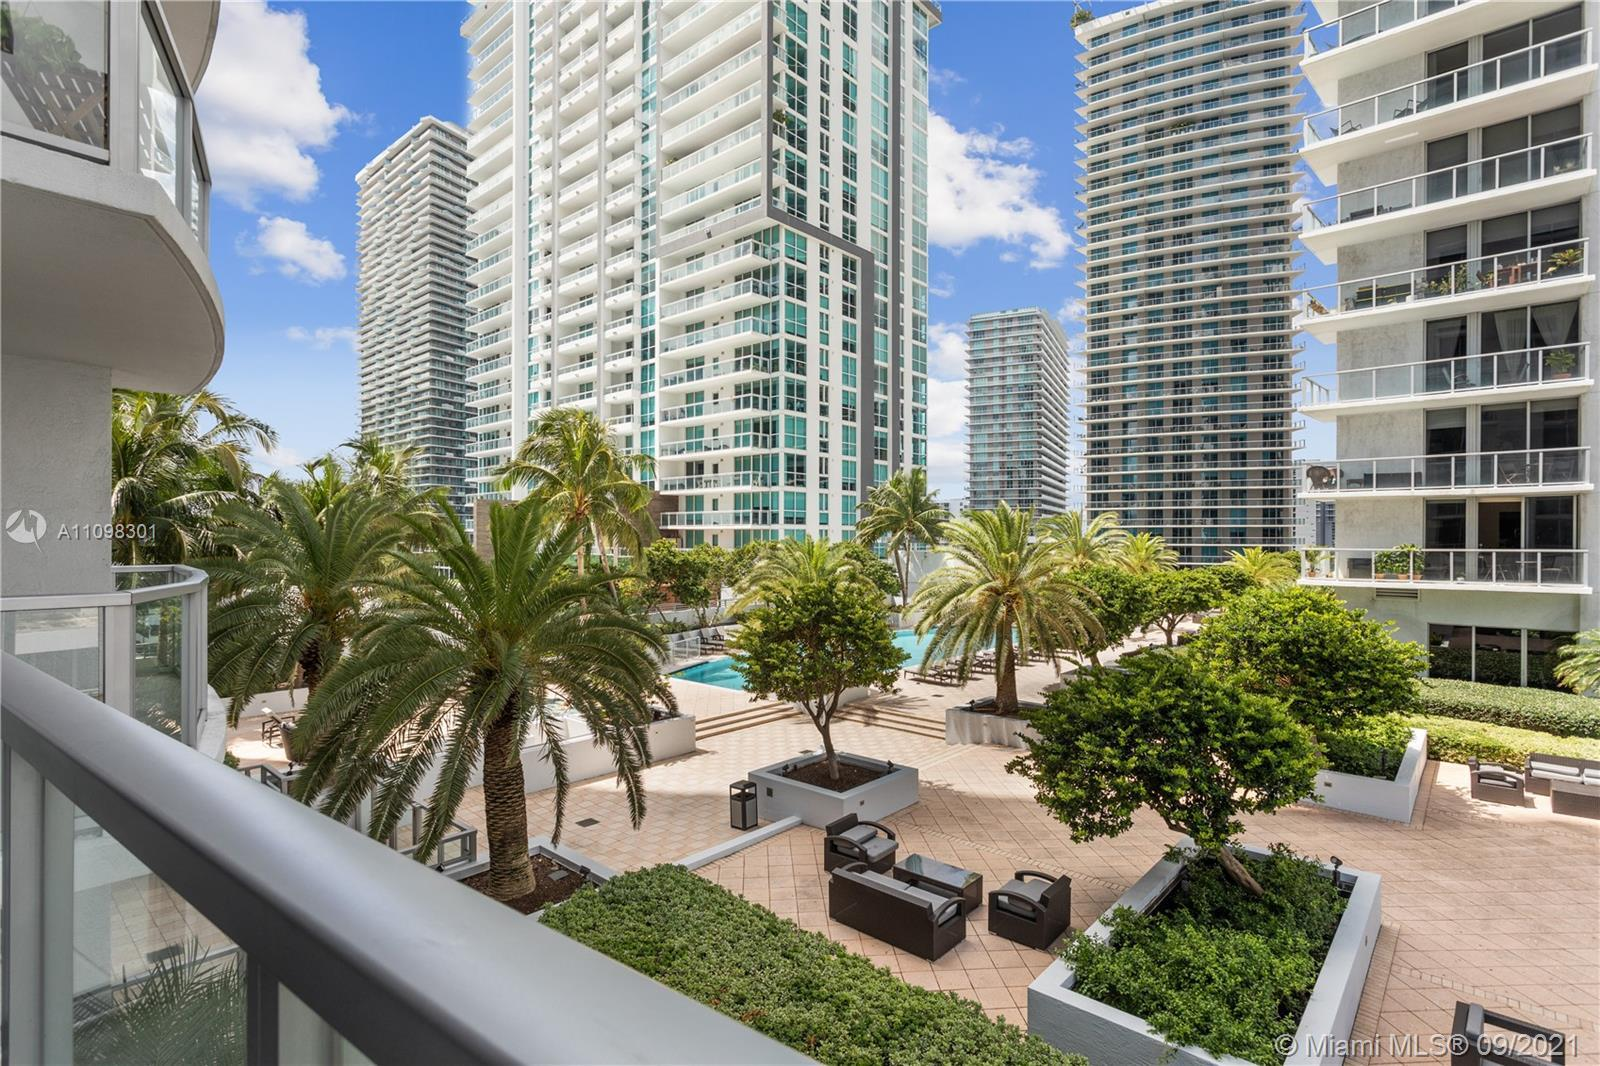 Gorgeous 2 bedroom condo with over 1300 SF in the heart of Brickell's Financial District!  Residence